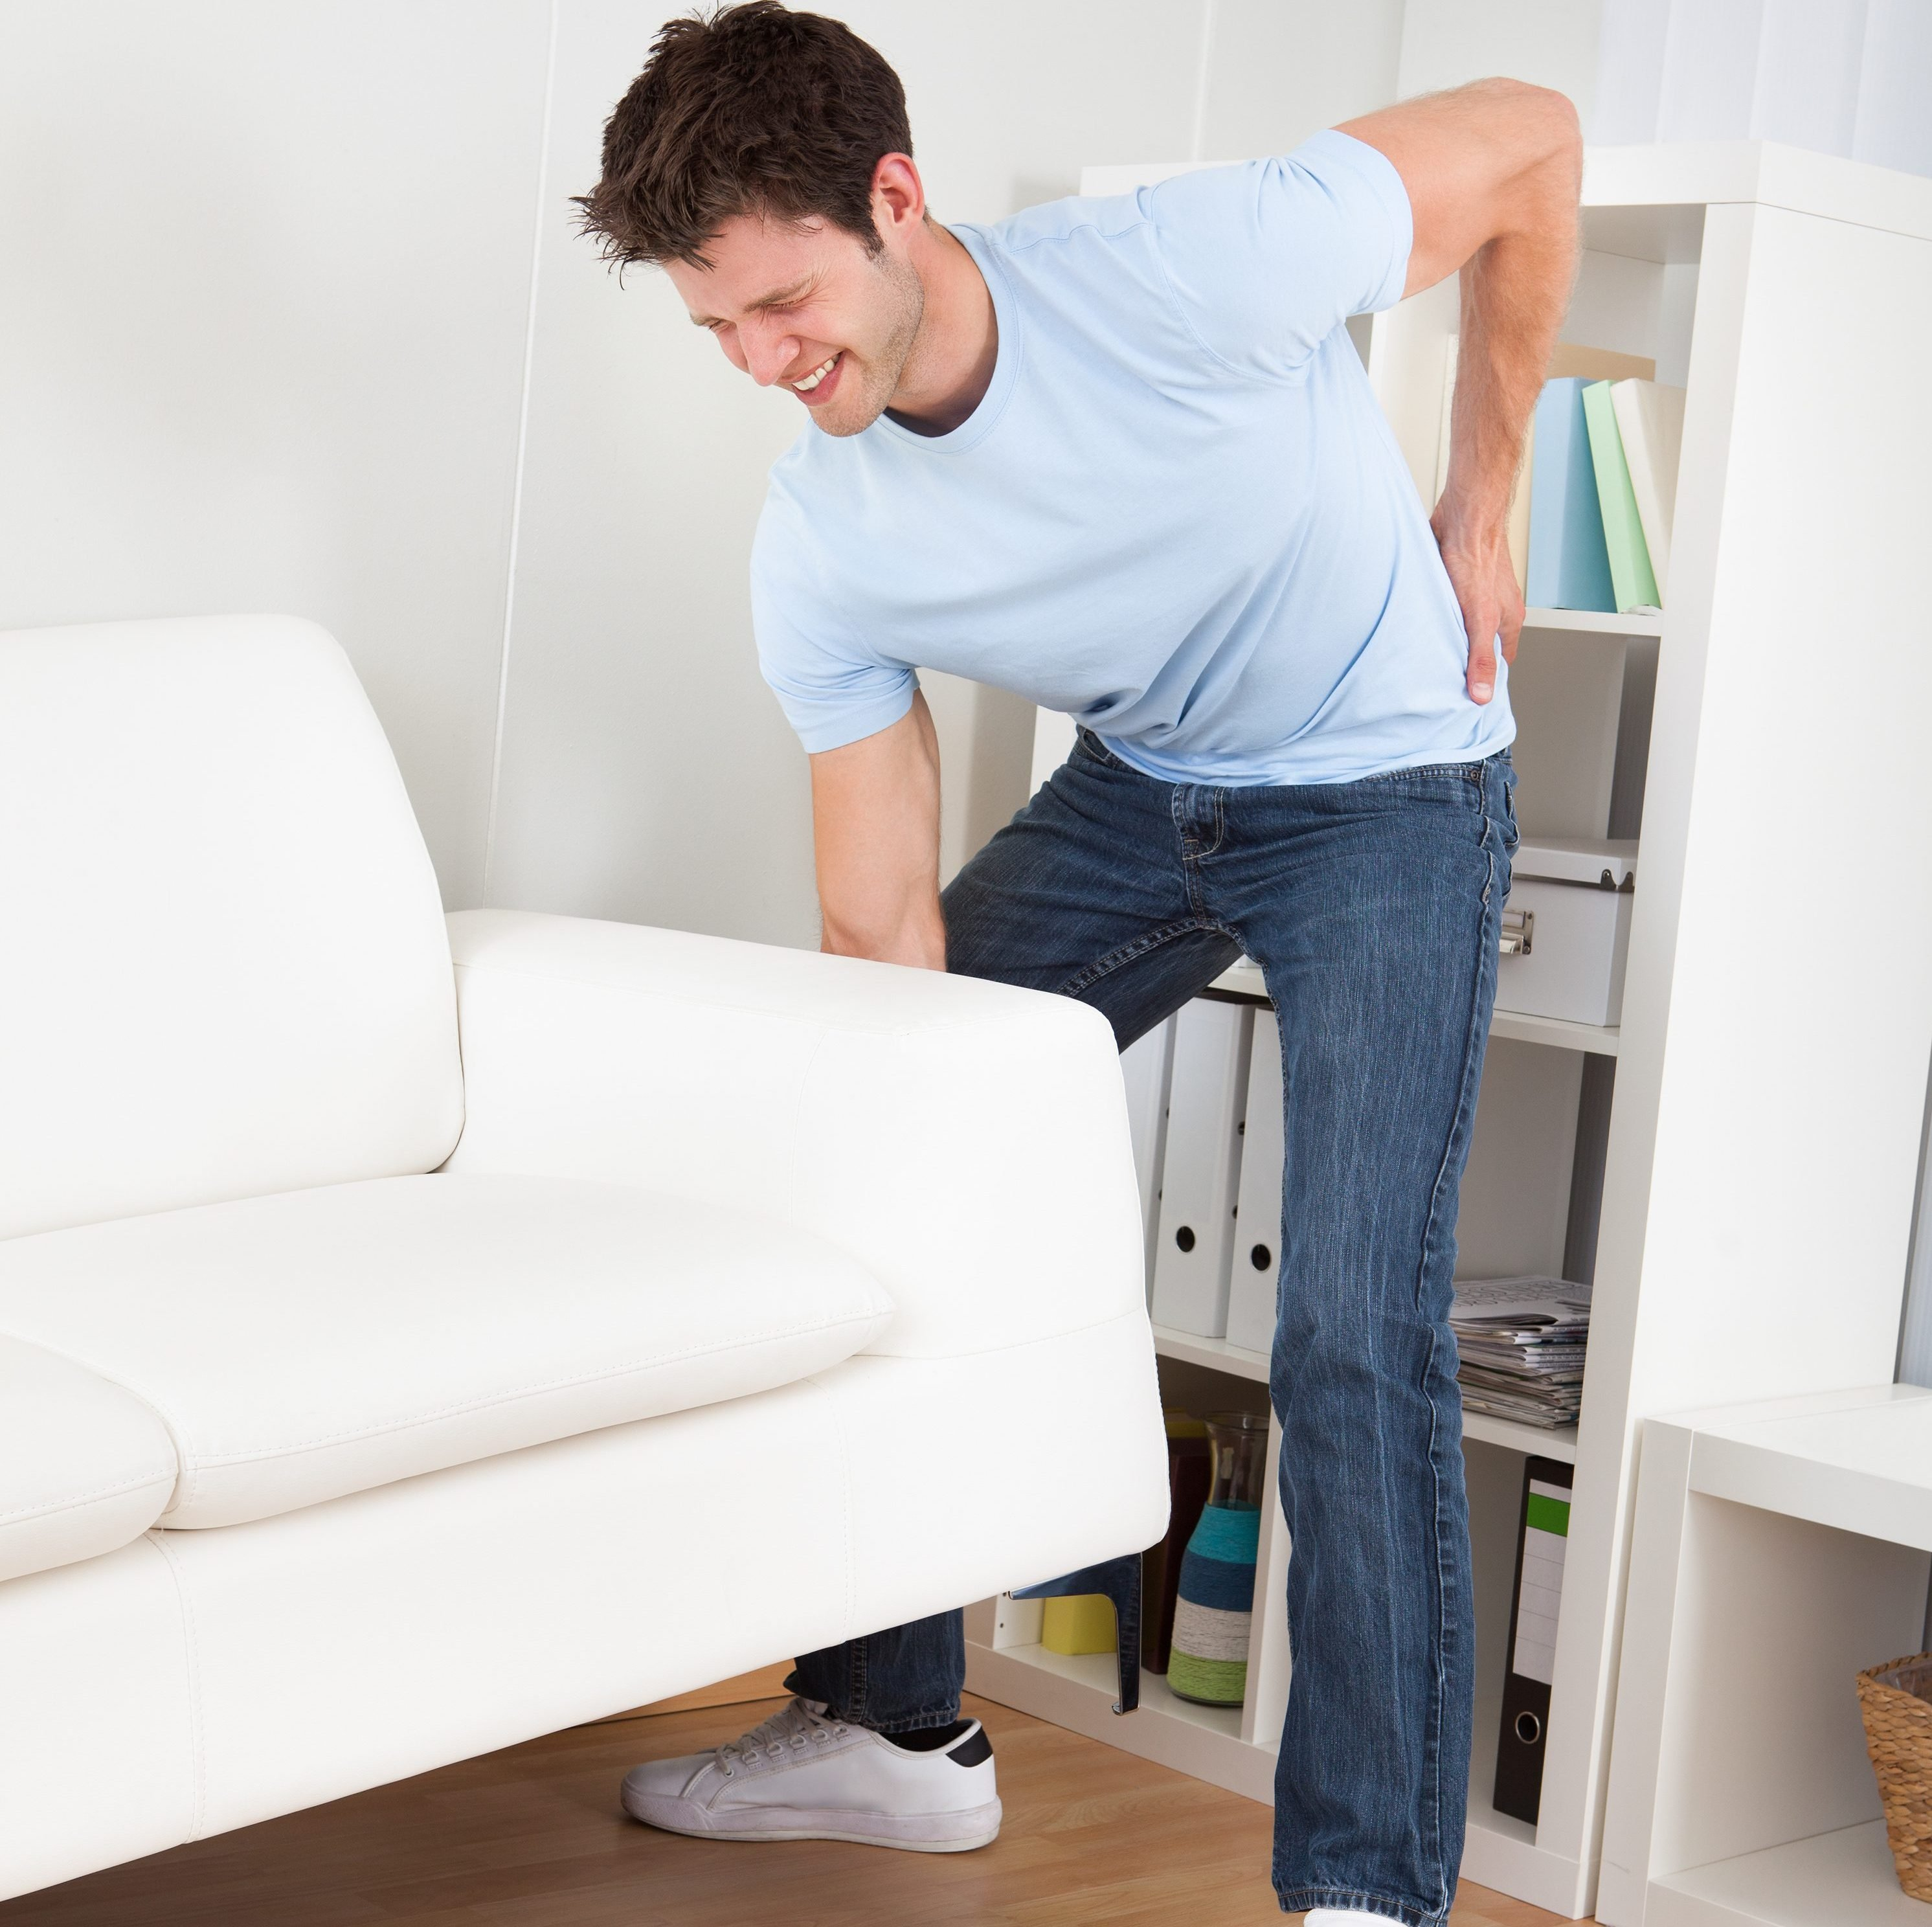 Why Moving Can Be So Tough